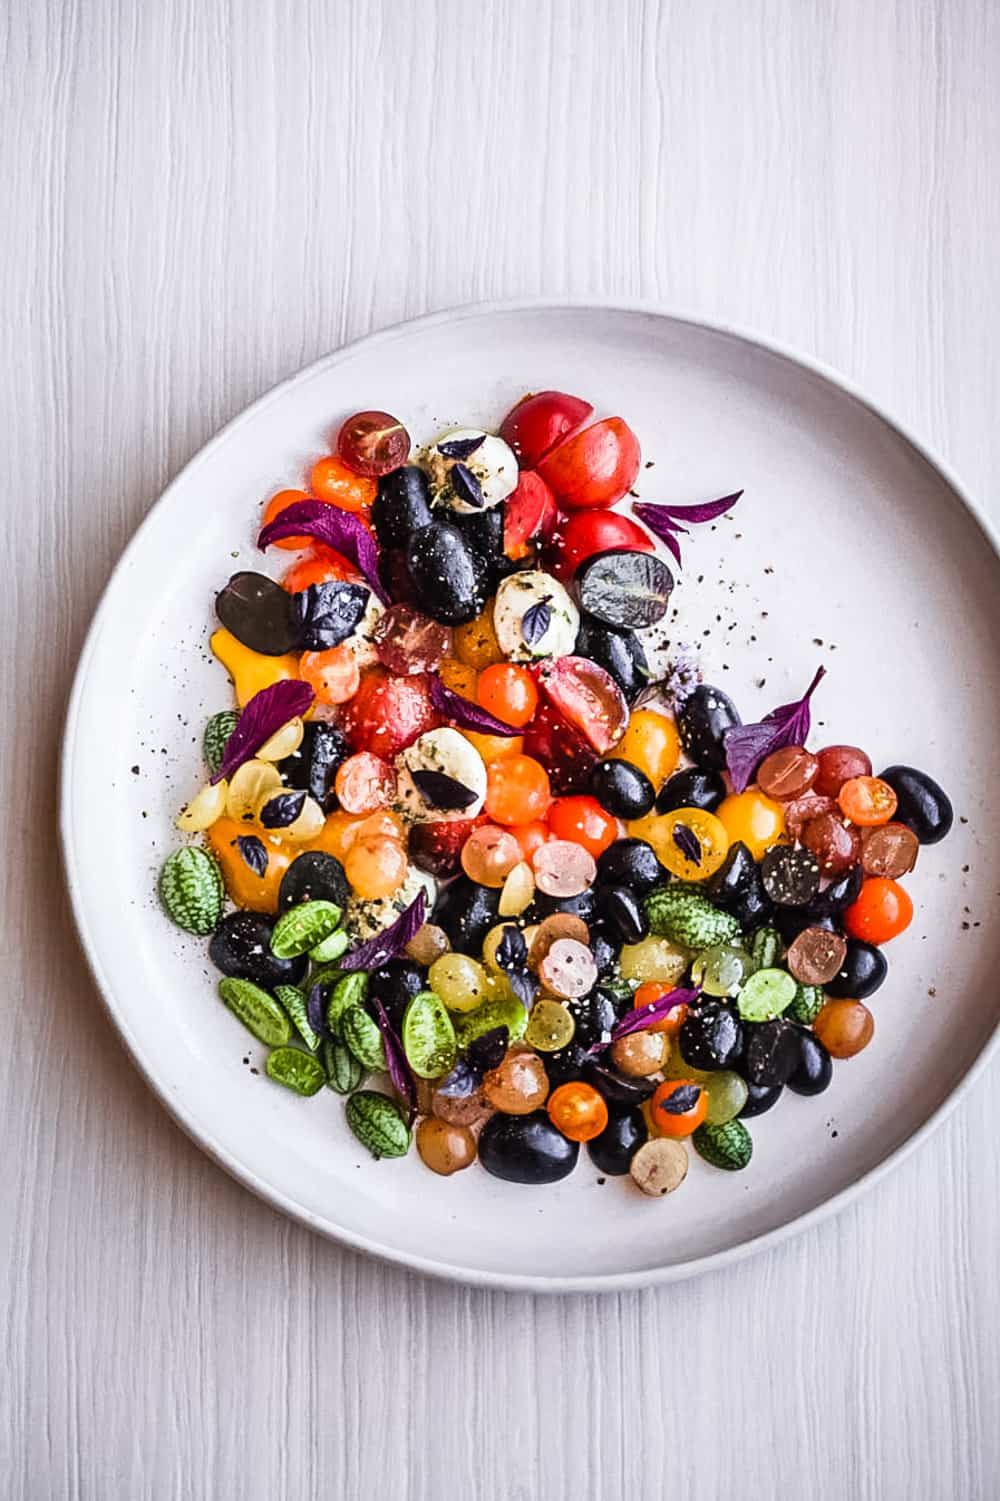 a summer salad with cherry tomatoes, cucuamelons, grapes, basil and cheese arranged on a plate.